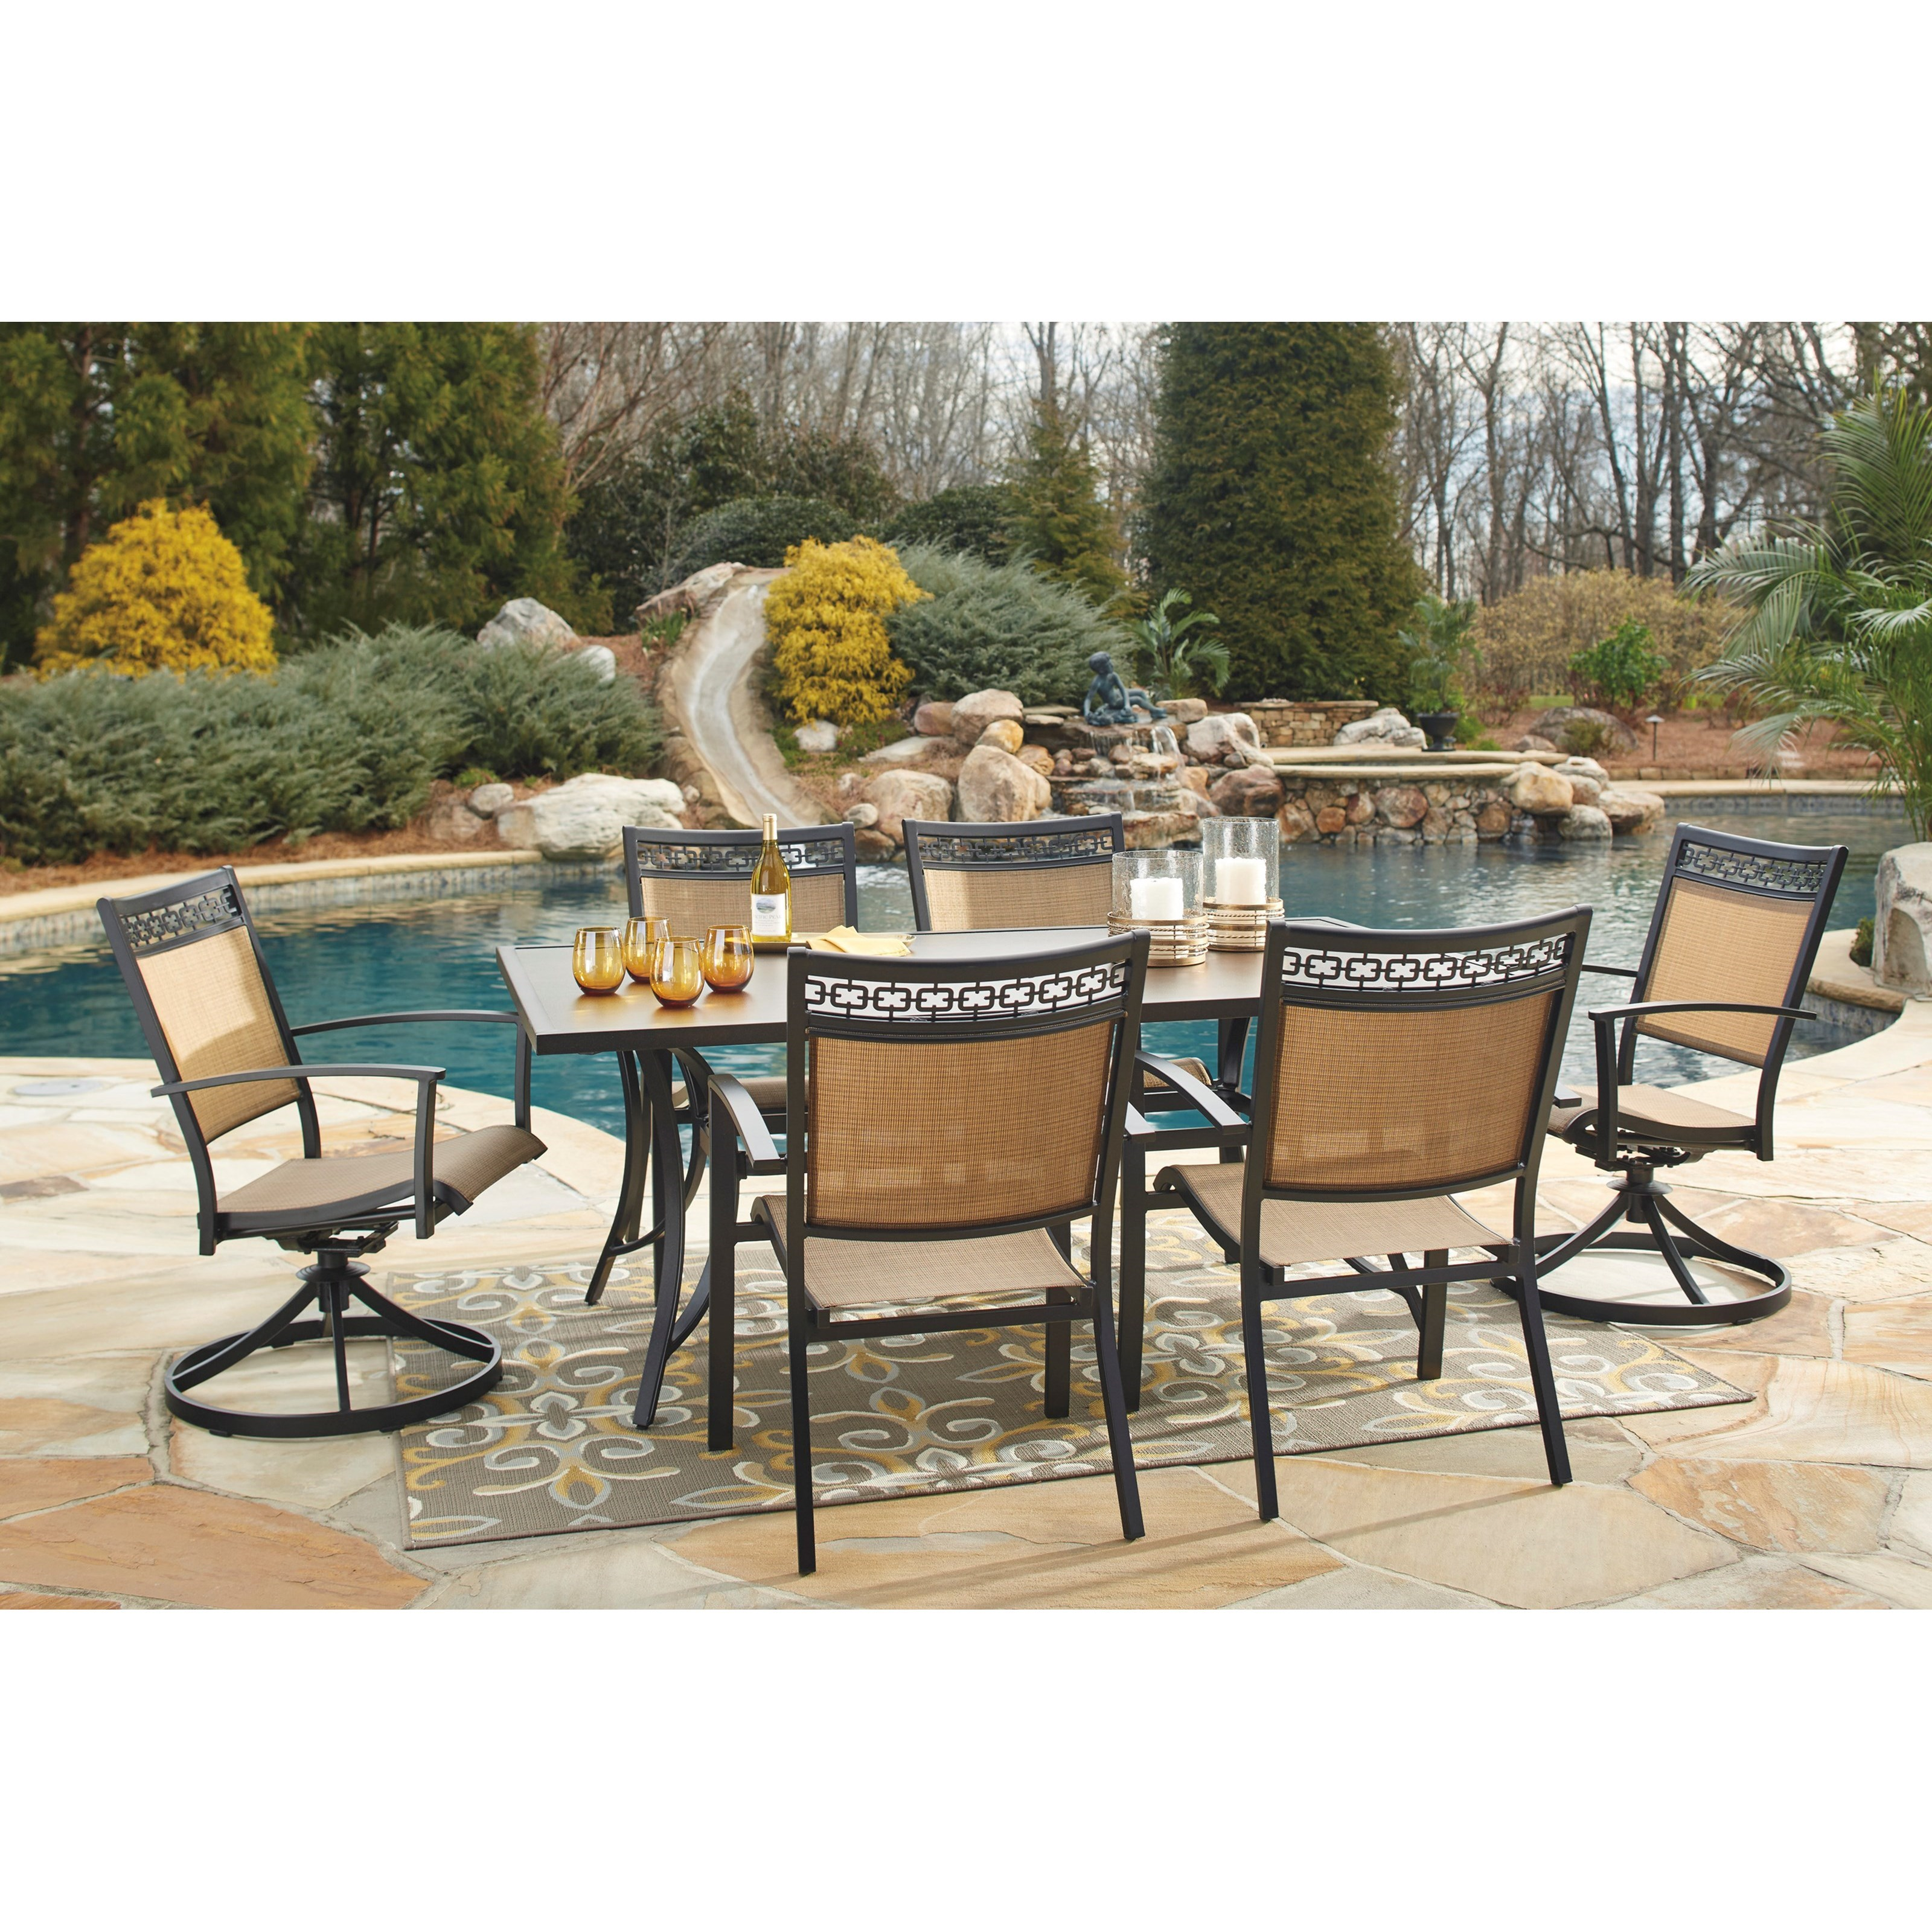 Signature design by ashley carmadelia outdoor rectangular Outdoor dinner table setting